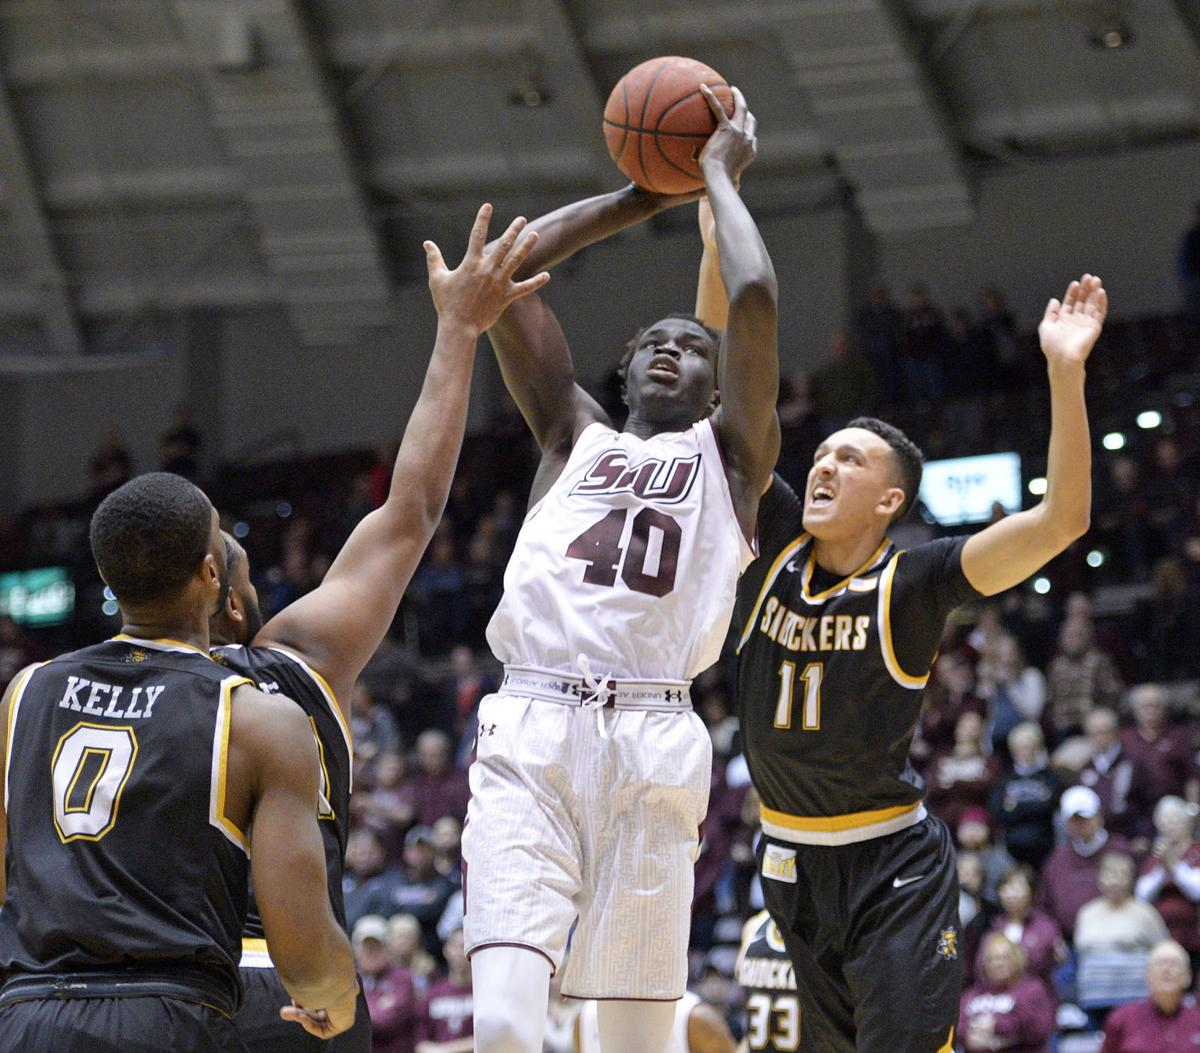 Salukis not only MVC team working around injuries